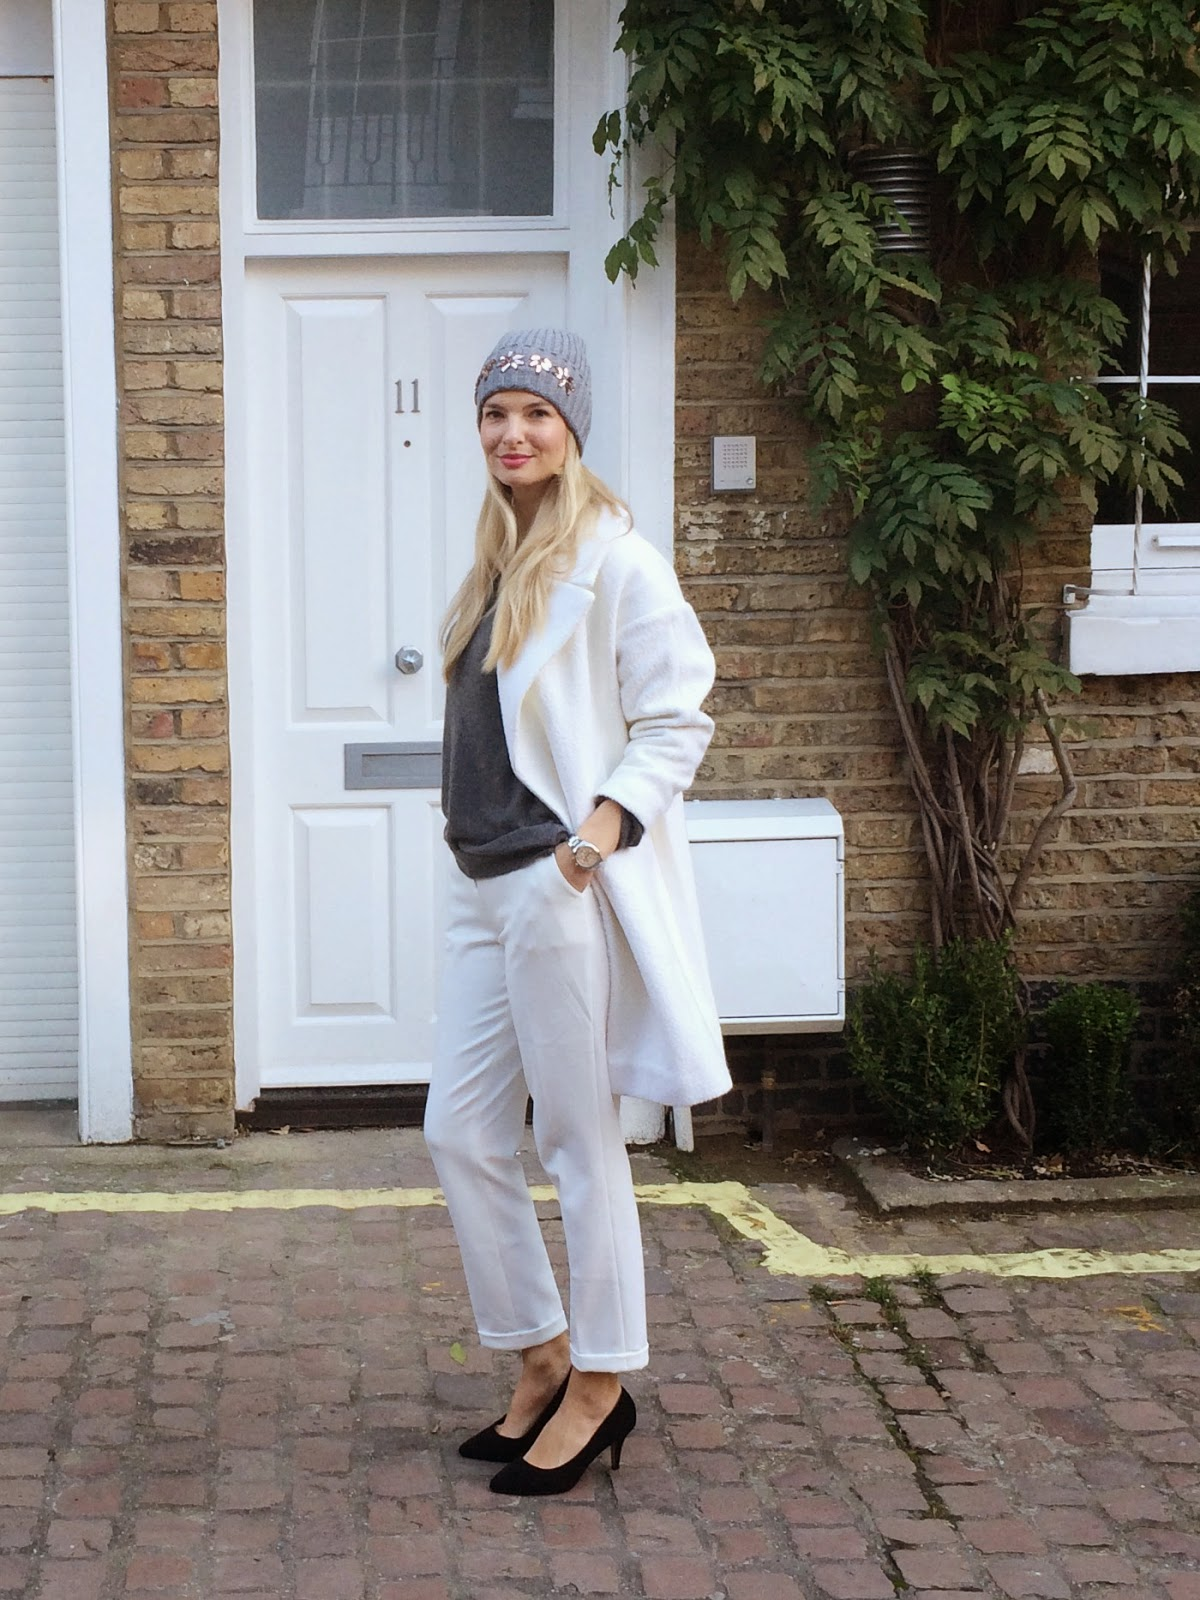 beanie, grey beanie, white coat, white winter coat, oversize coat, slim leg trousers, asos, asos look book